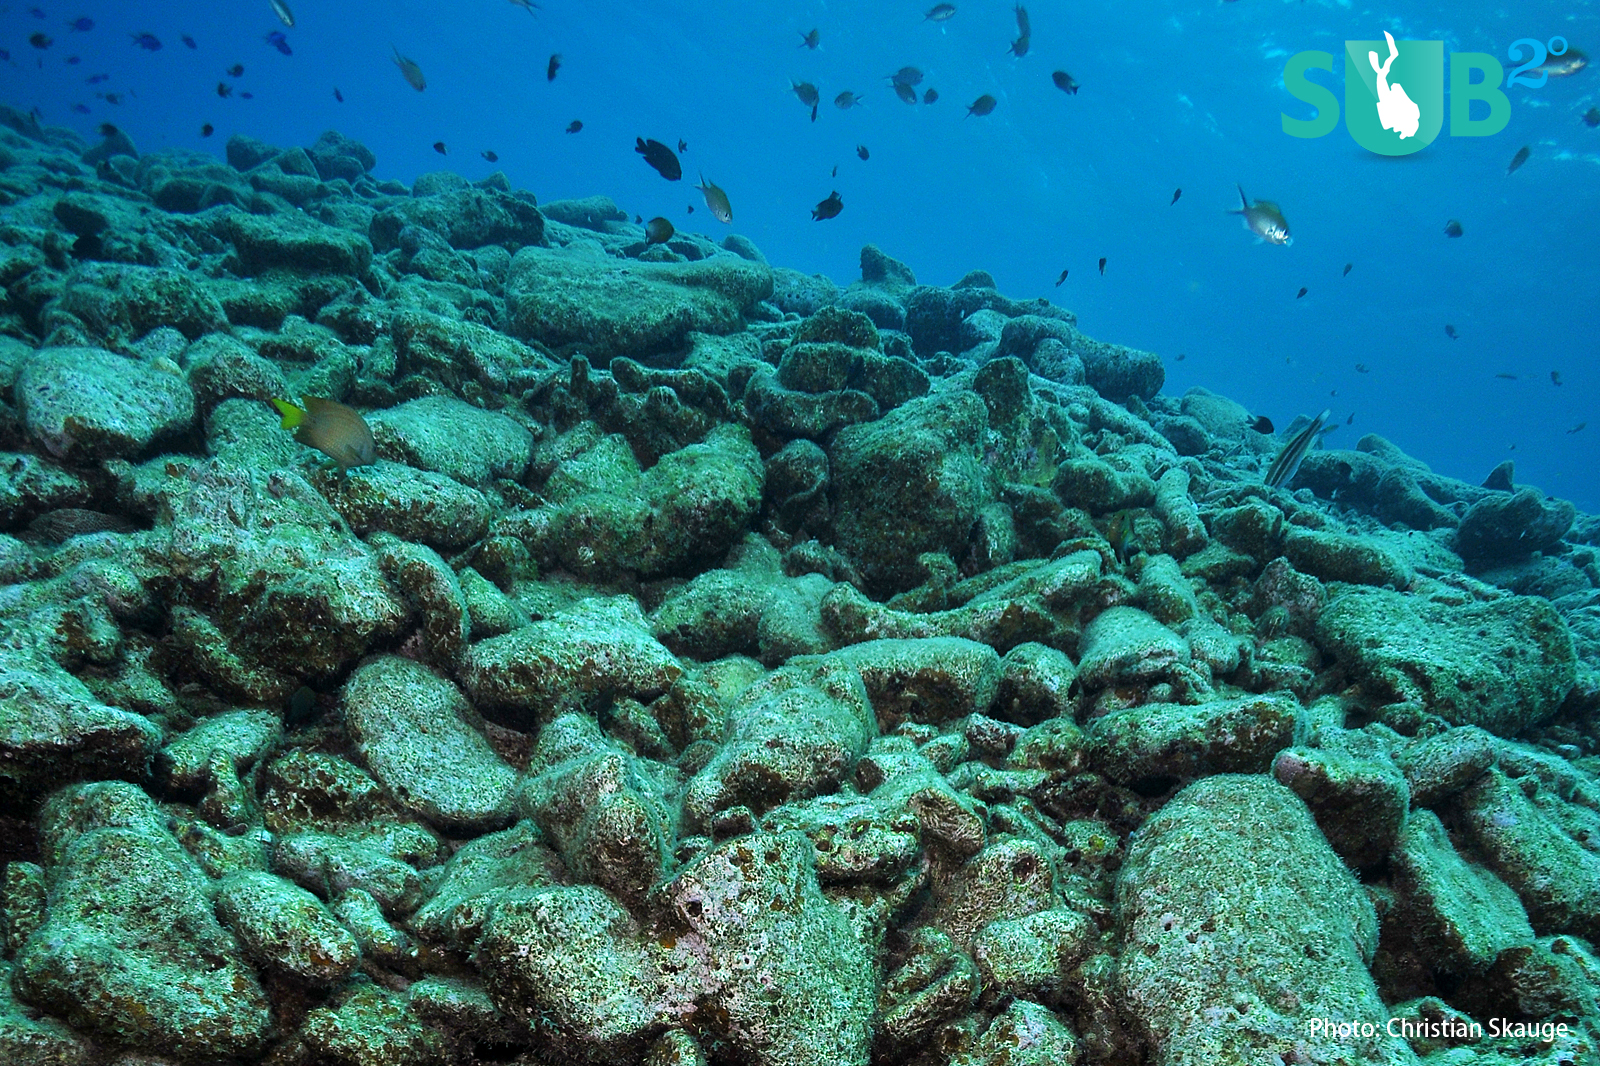 The remains of a dead coral reef